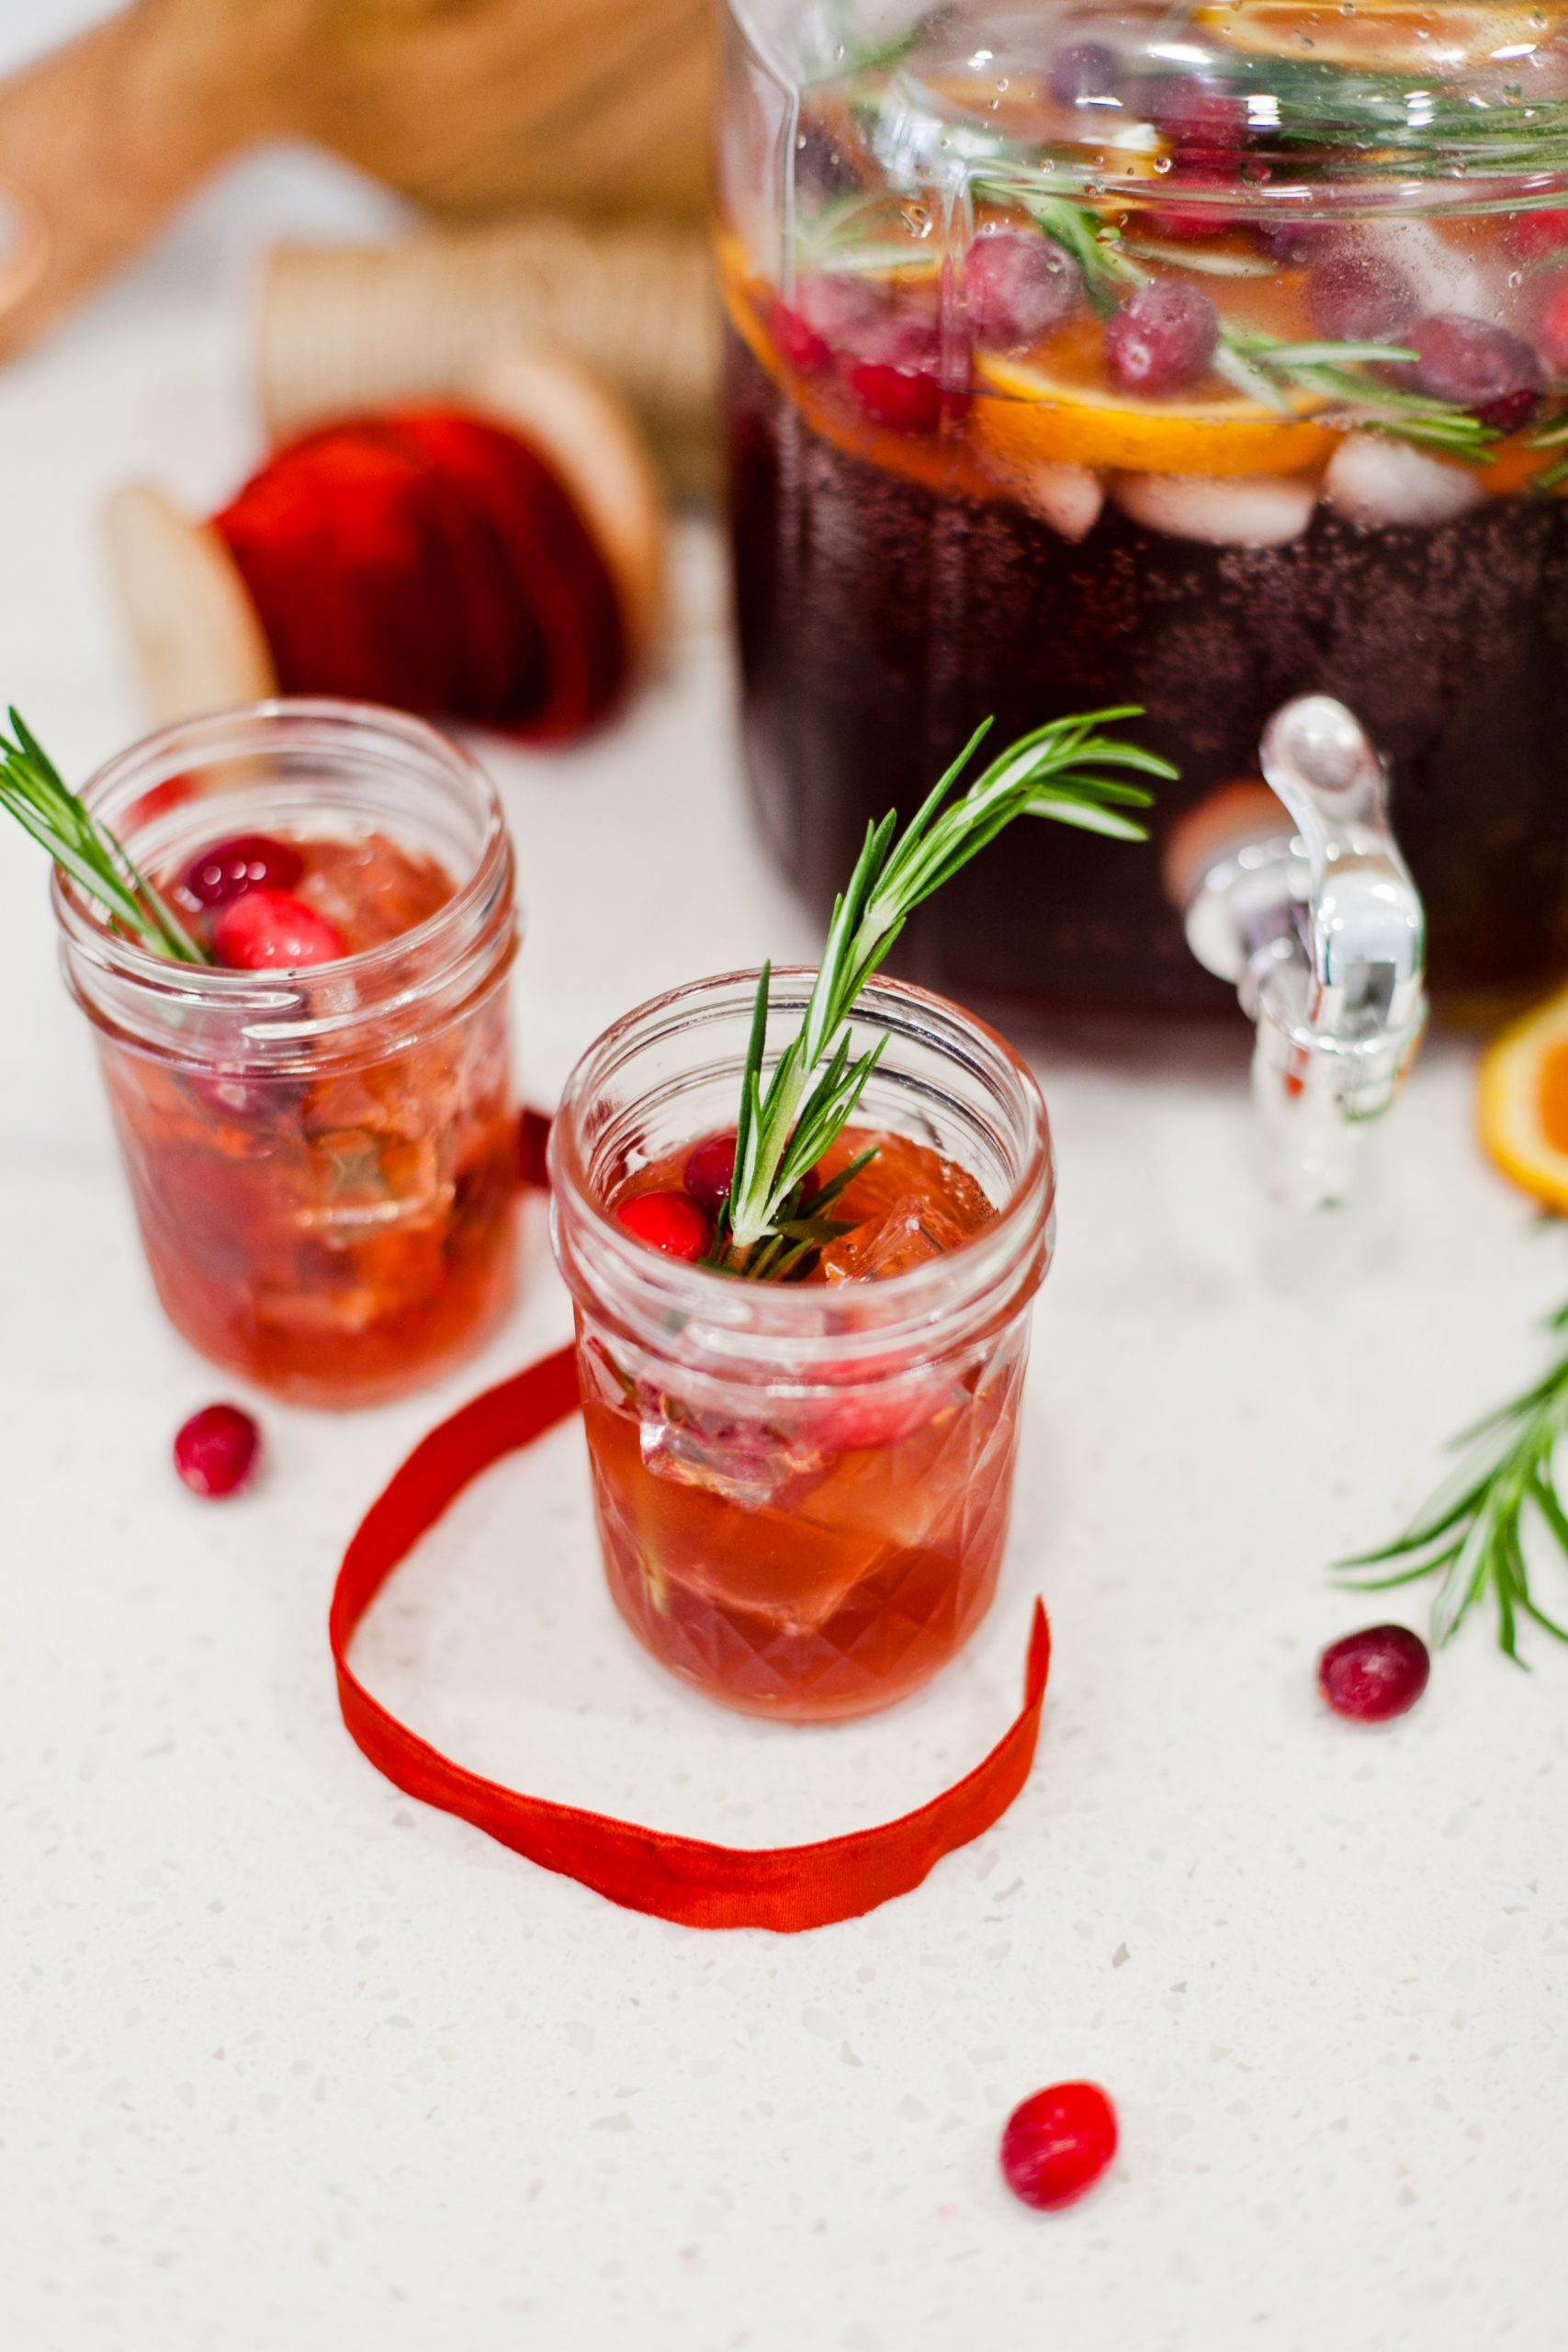 5 Easy Holiday Entertaining Tips for a Stress-Less Season